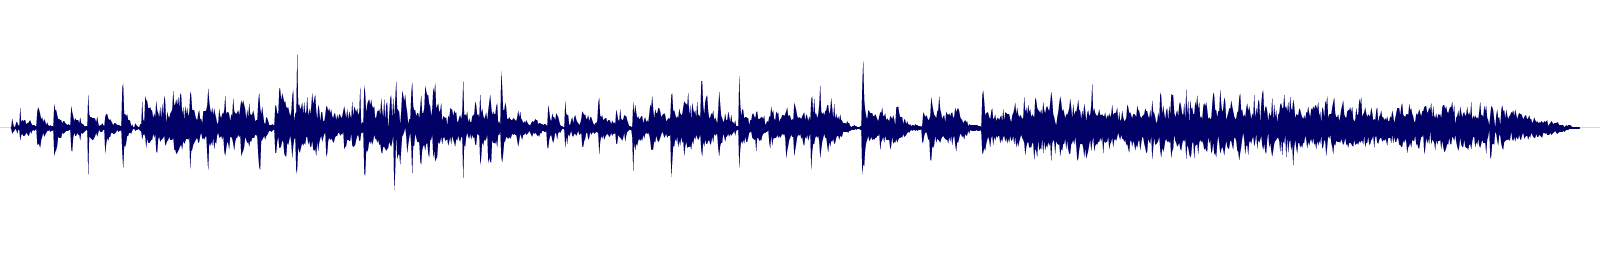 waveform of track #95721